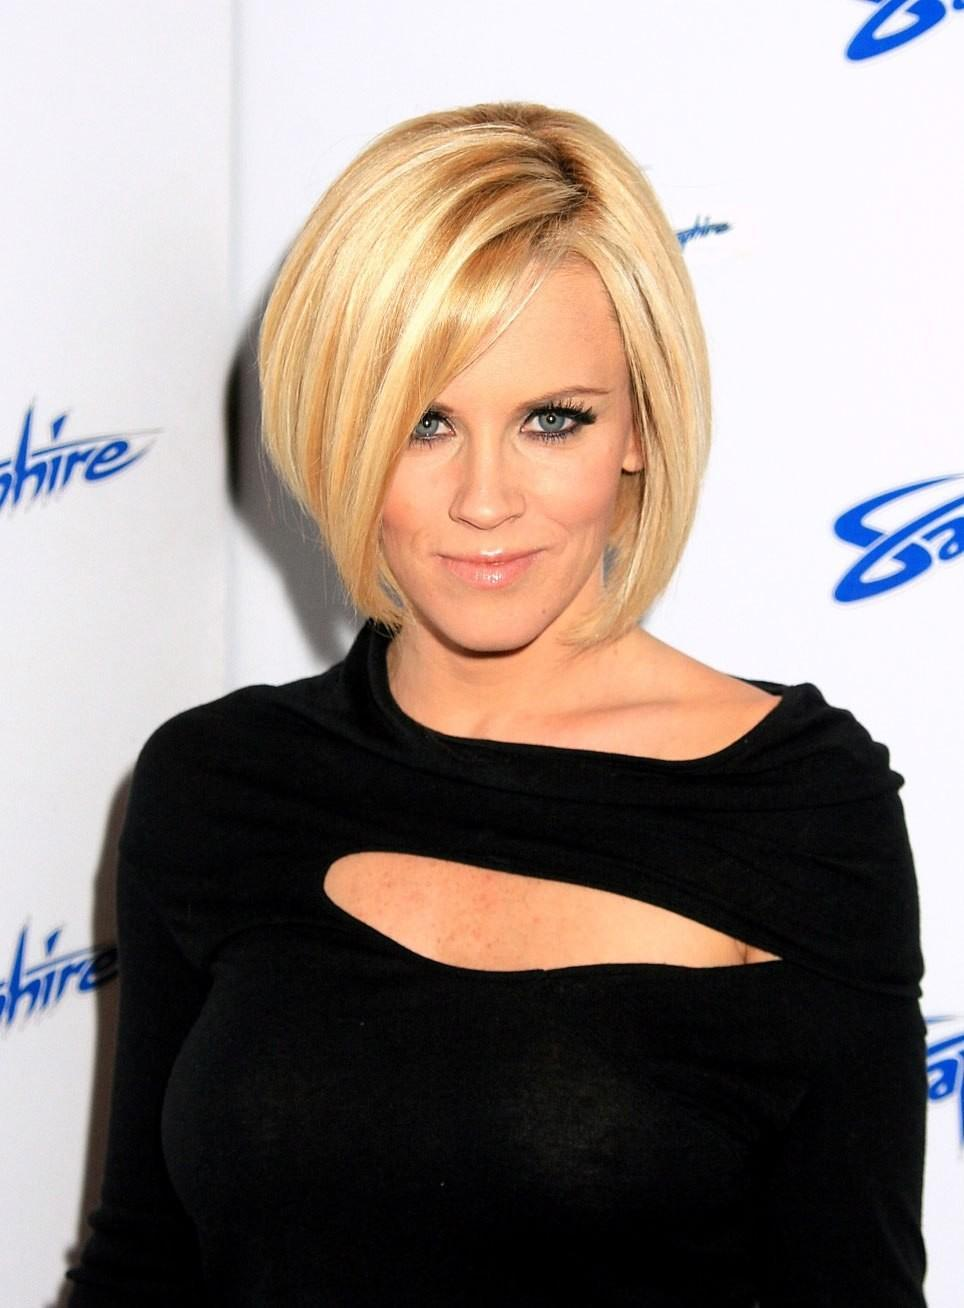 Heres What Industry Insiders Say About Jenny Mccarthy Bob Hairstyle